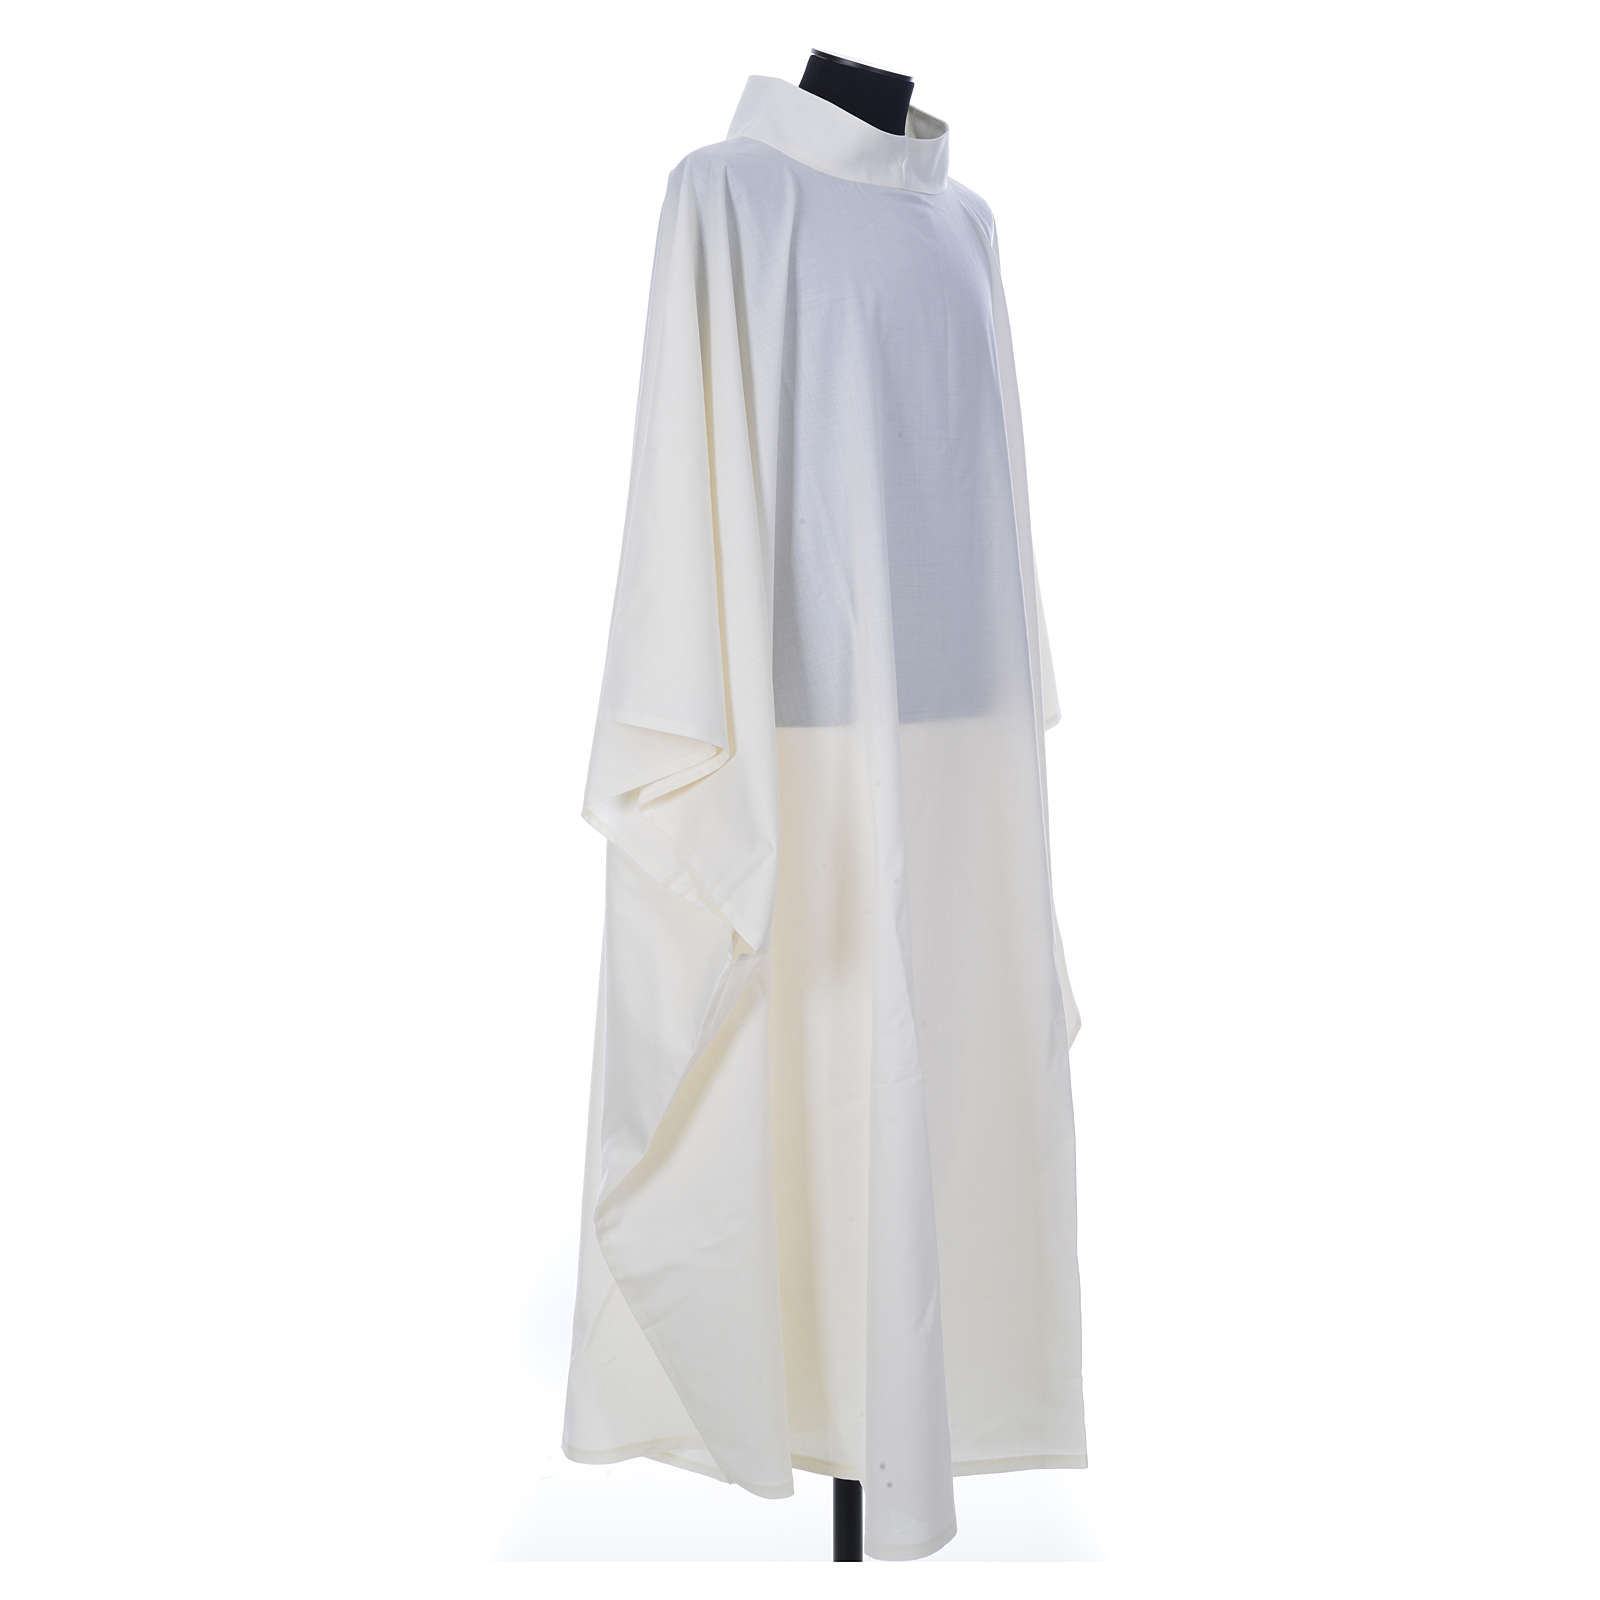 Aube chasuble ivoire 45% laine 55% polyester 4